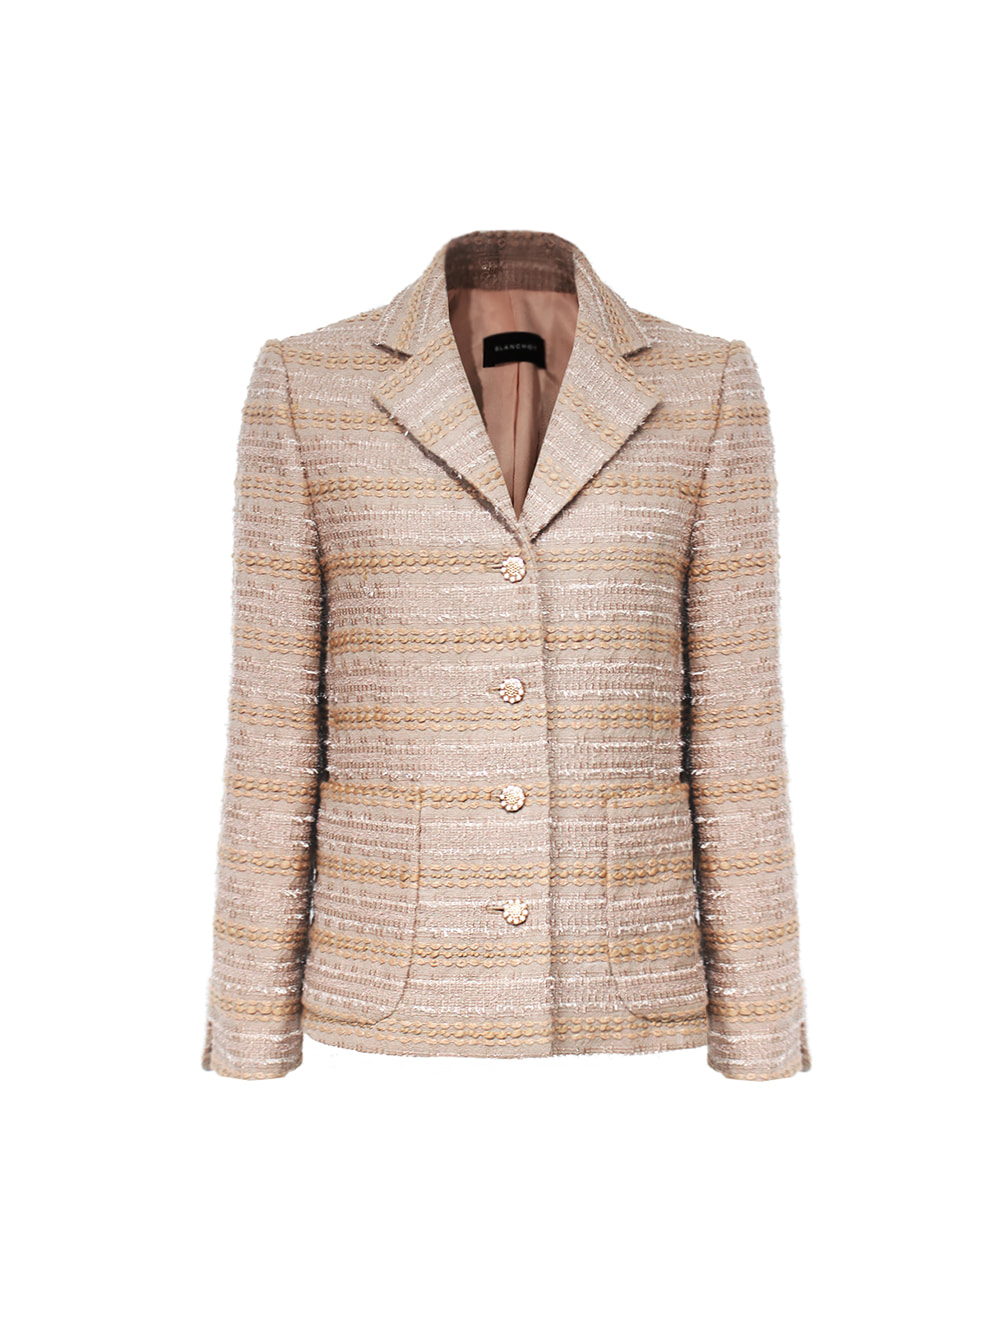 two beige tweed jacket